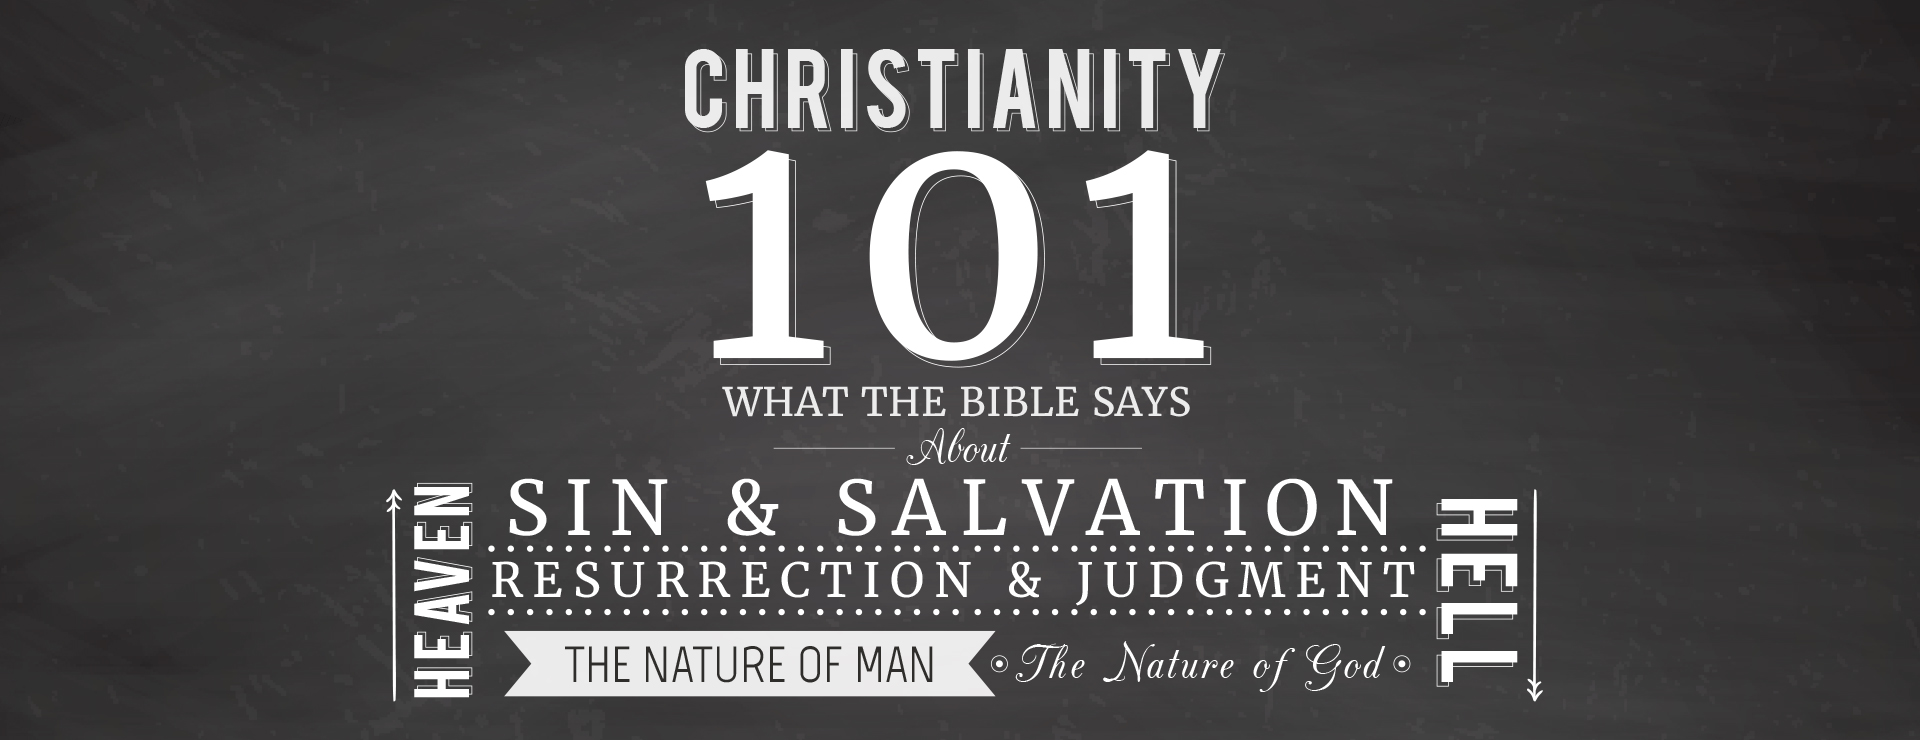 Current Sermon Series: Christianity 101